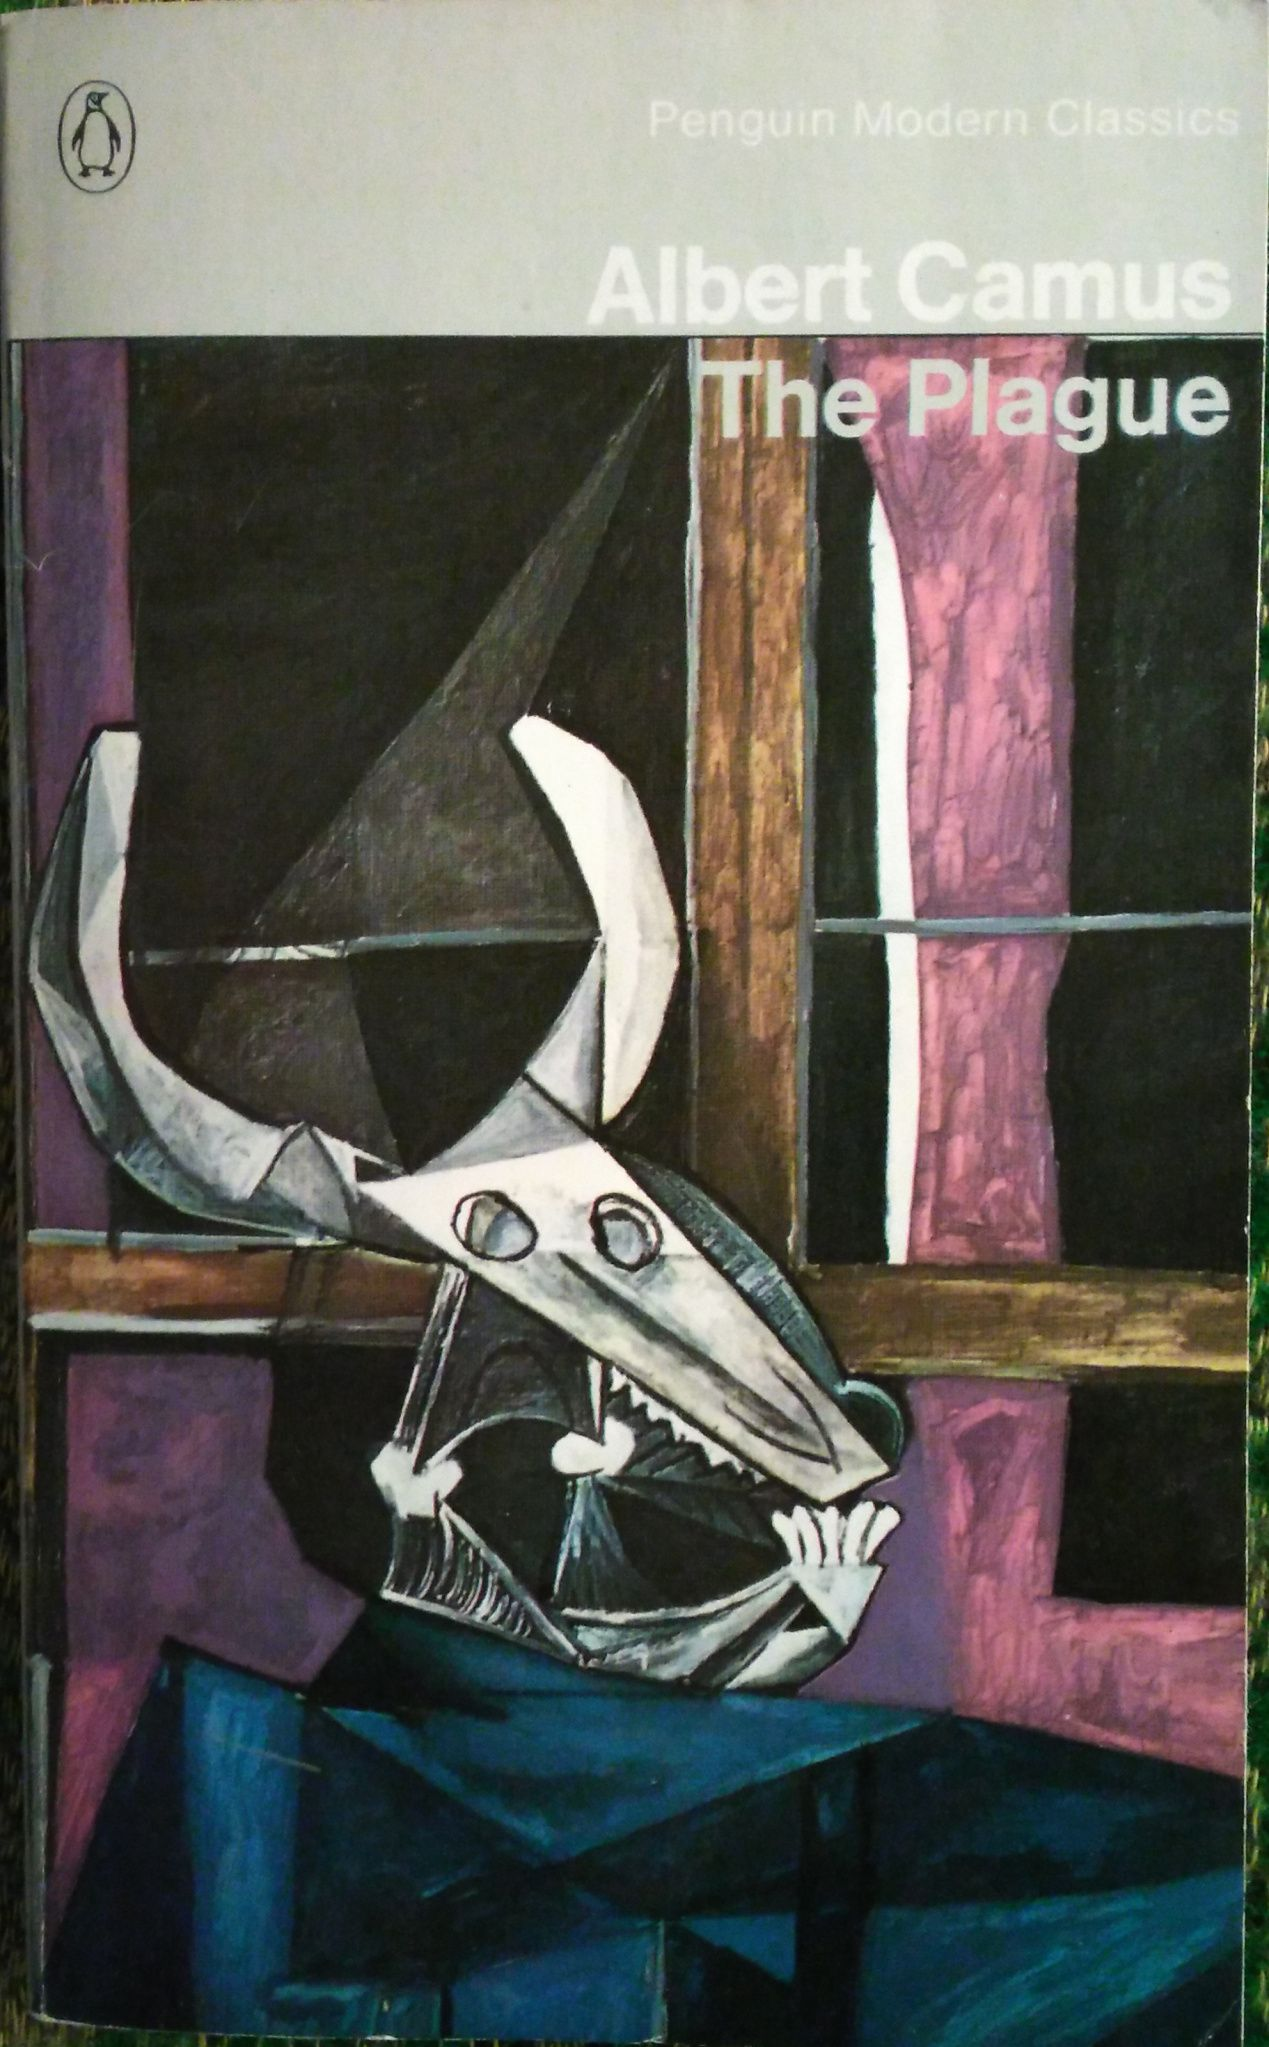 Albert Camus \'La Peste\' (The Plague). Penguin books edition, 1970 ...